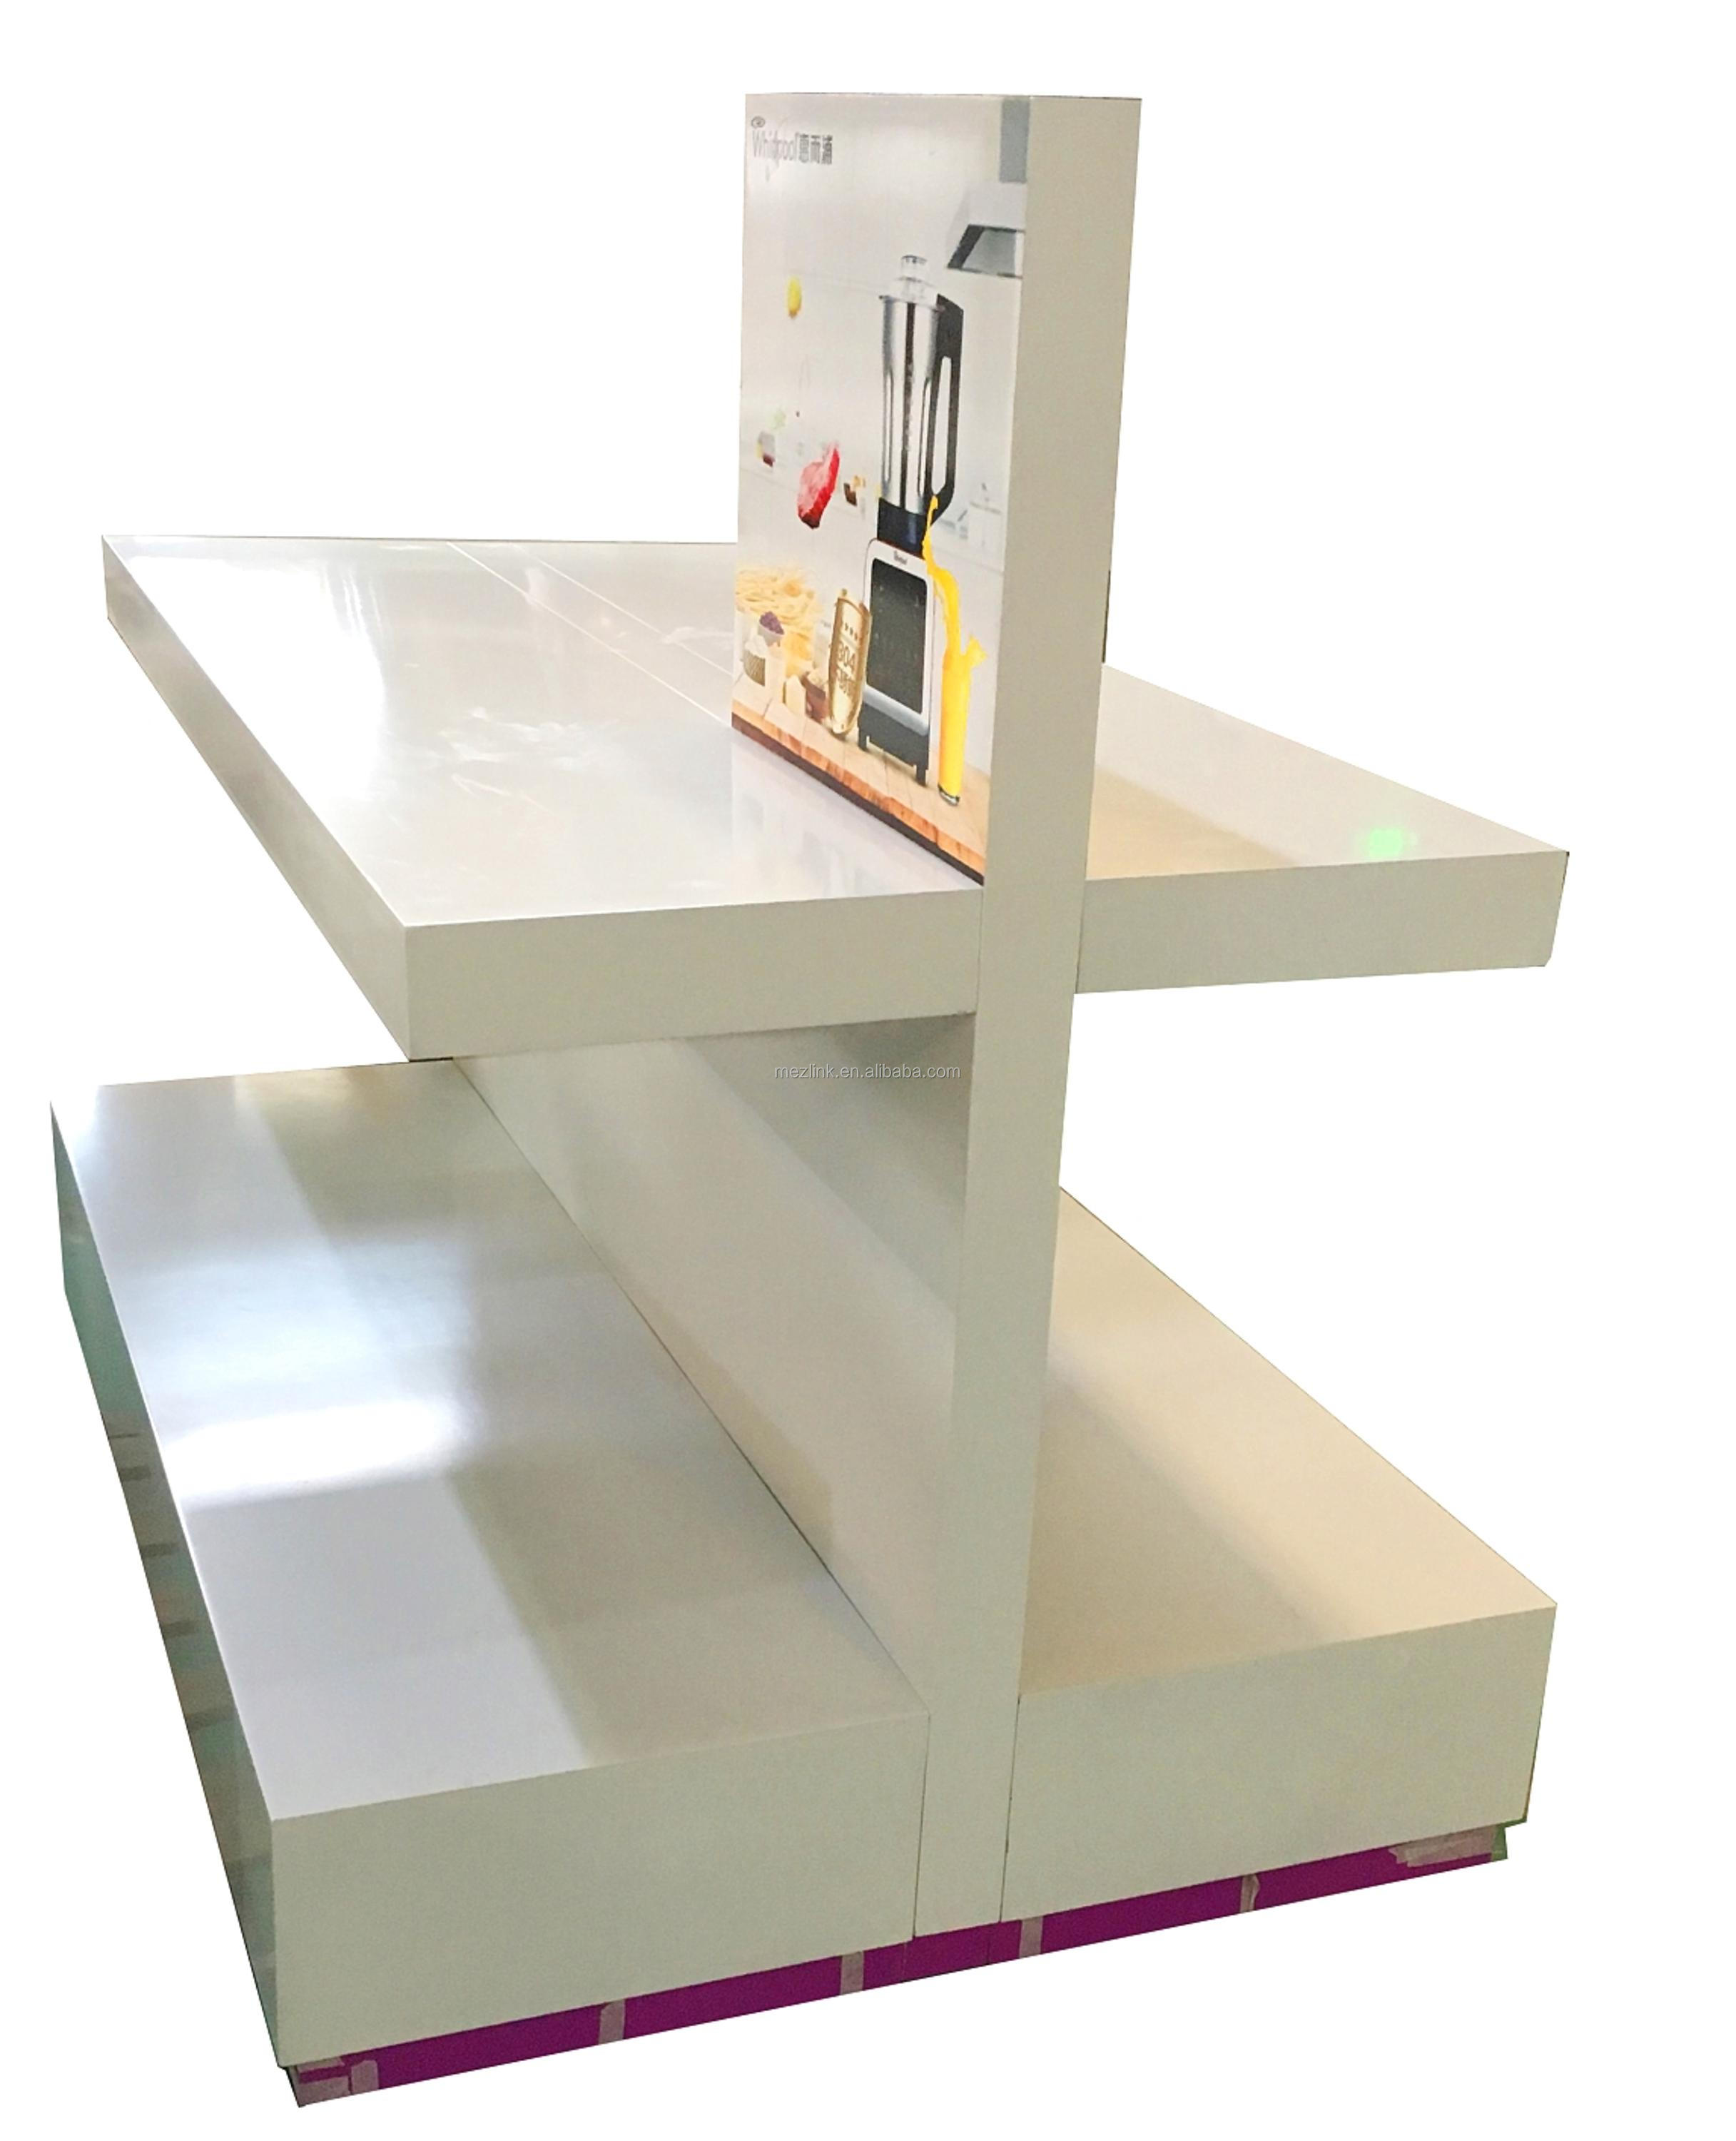 Hot sale display furniture for household appliances/exhibition product display/company showroom and franchised store,cheap price